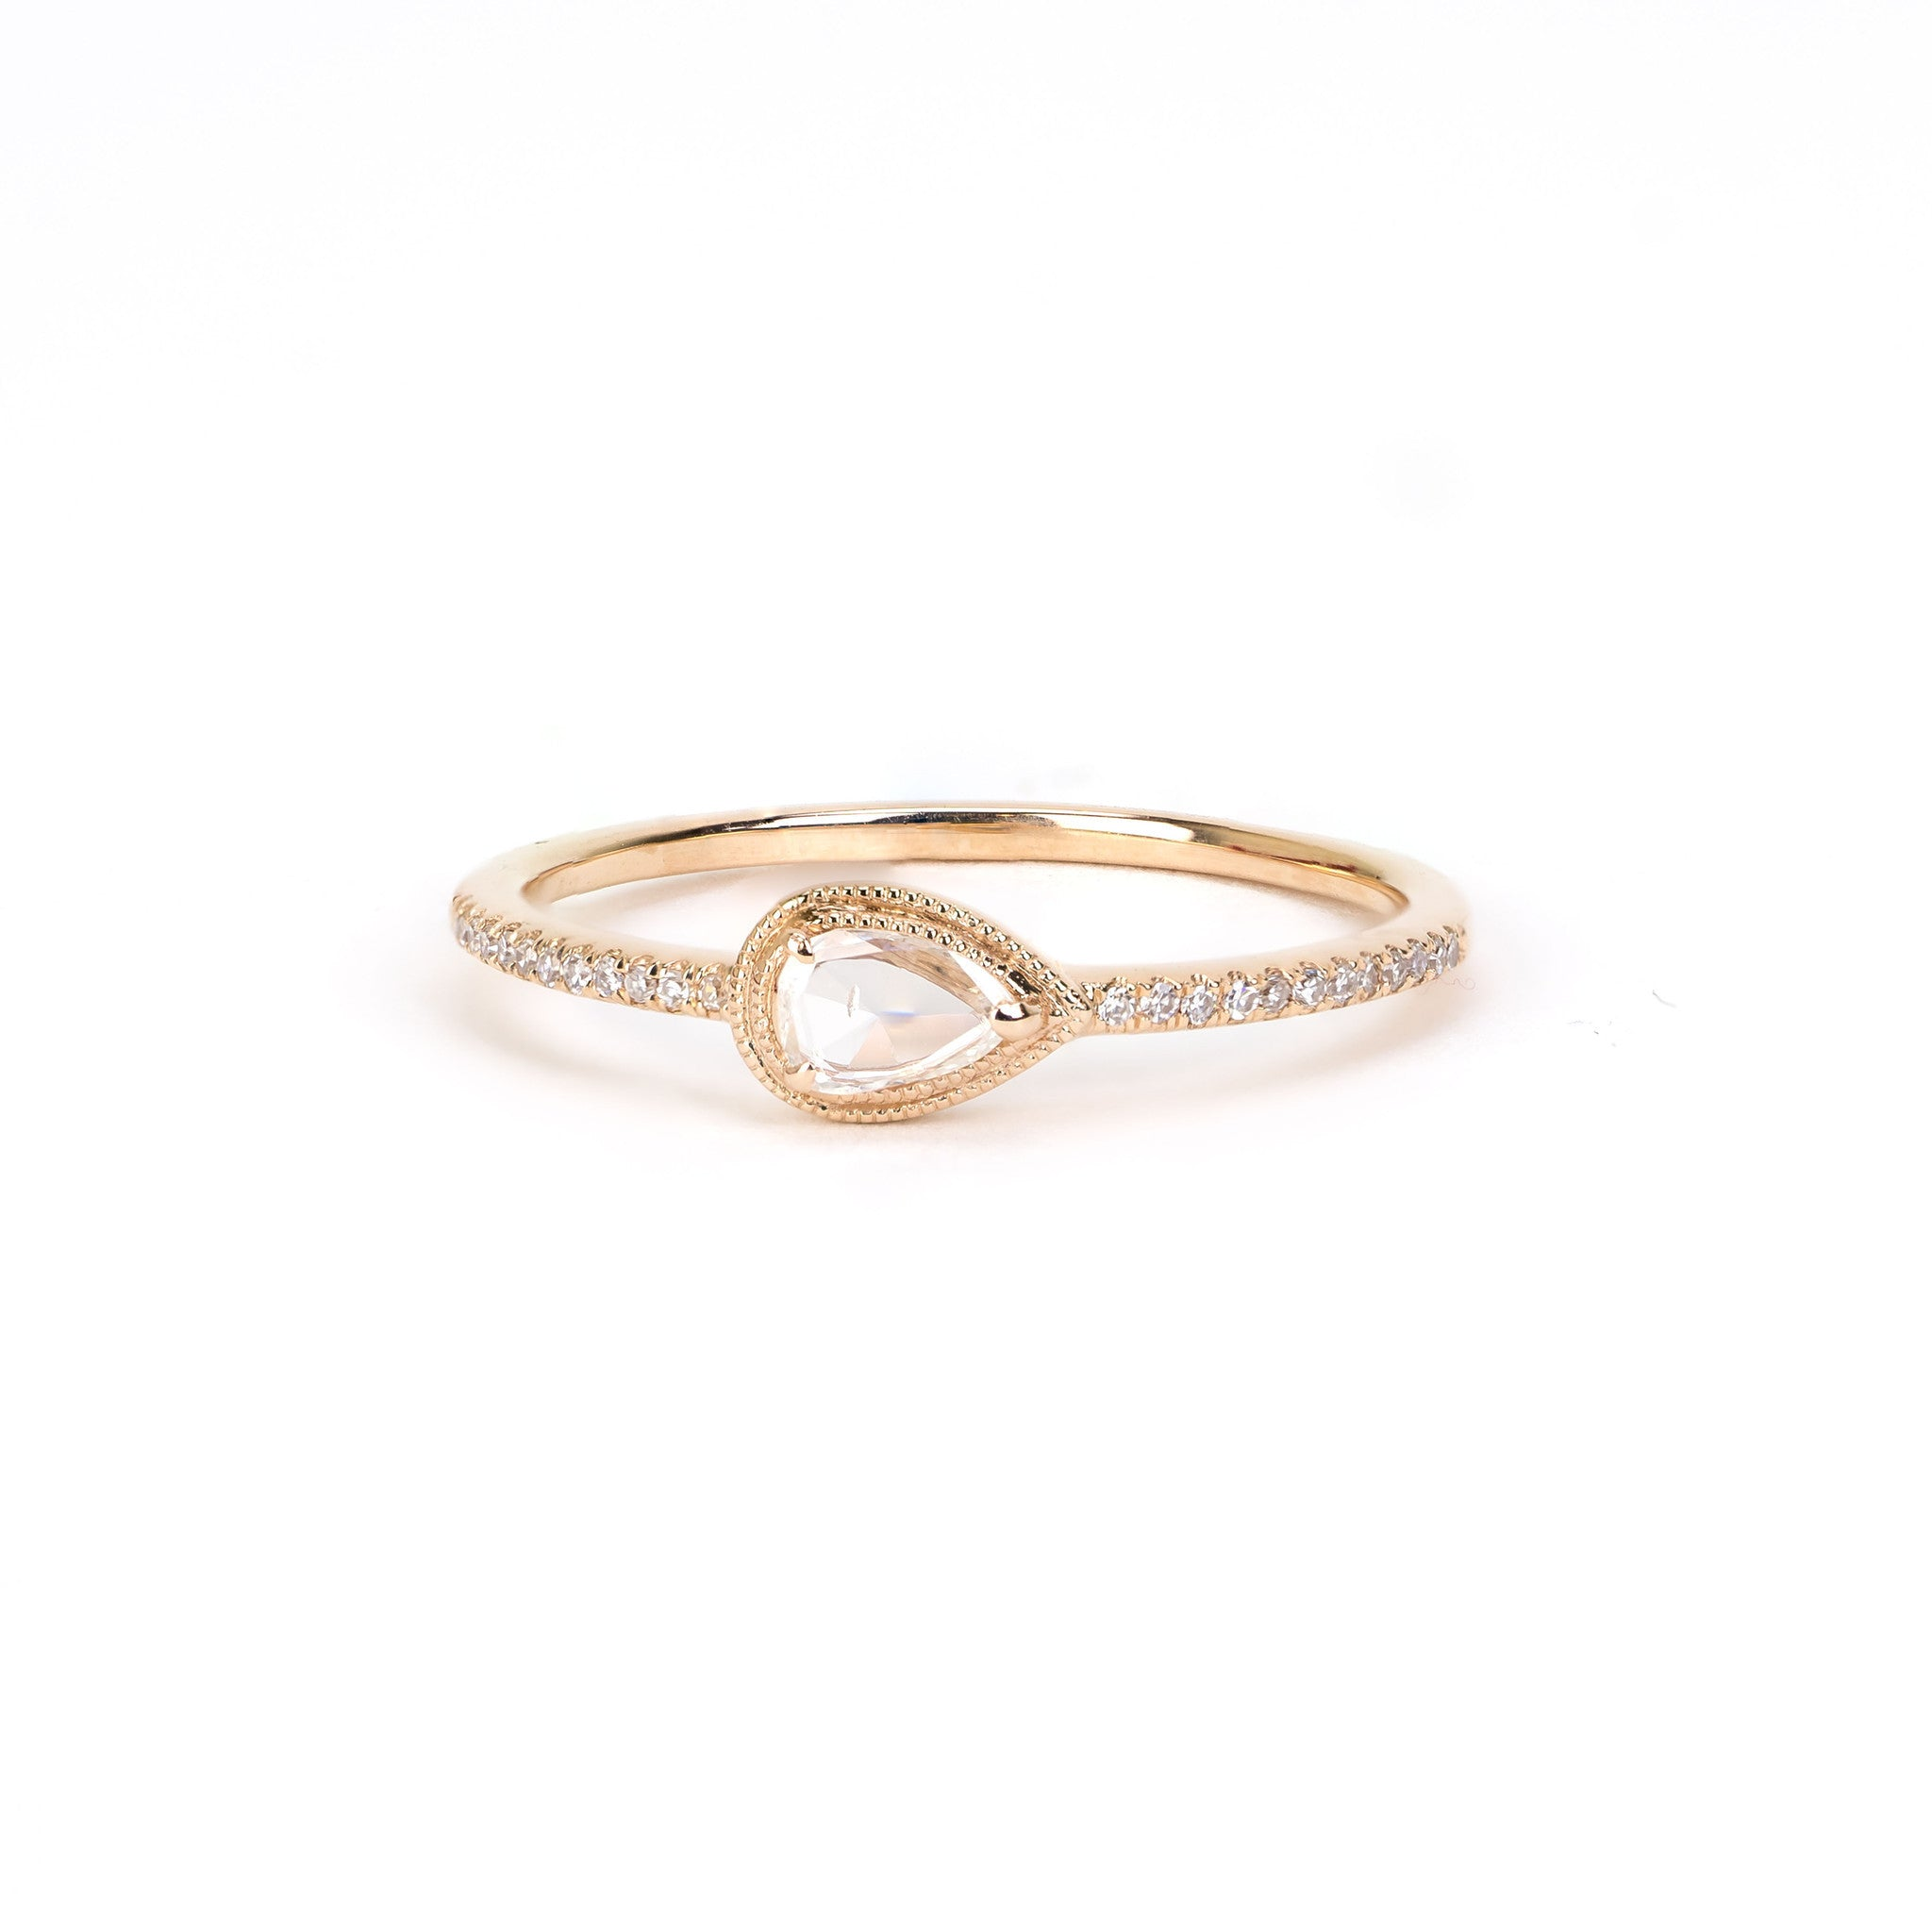 rings diamond dimond the anne sportun ring olivia scalloped gold engagement products